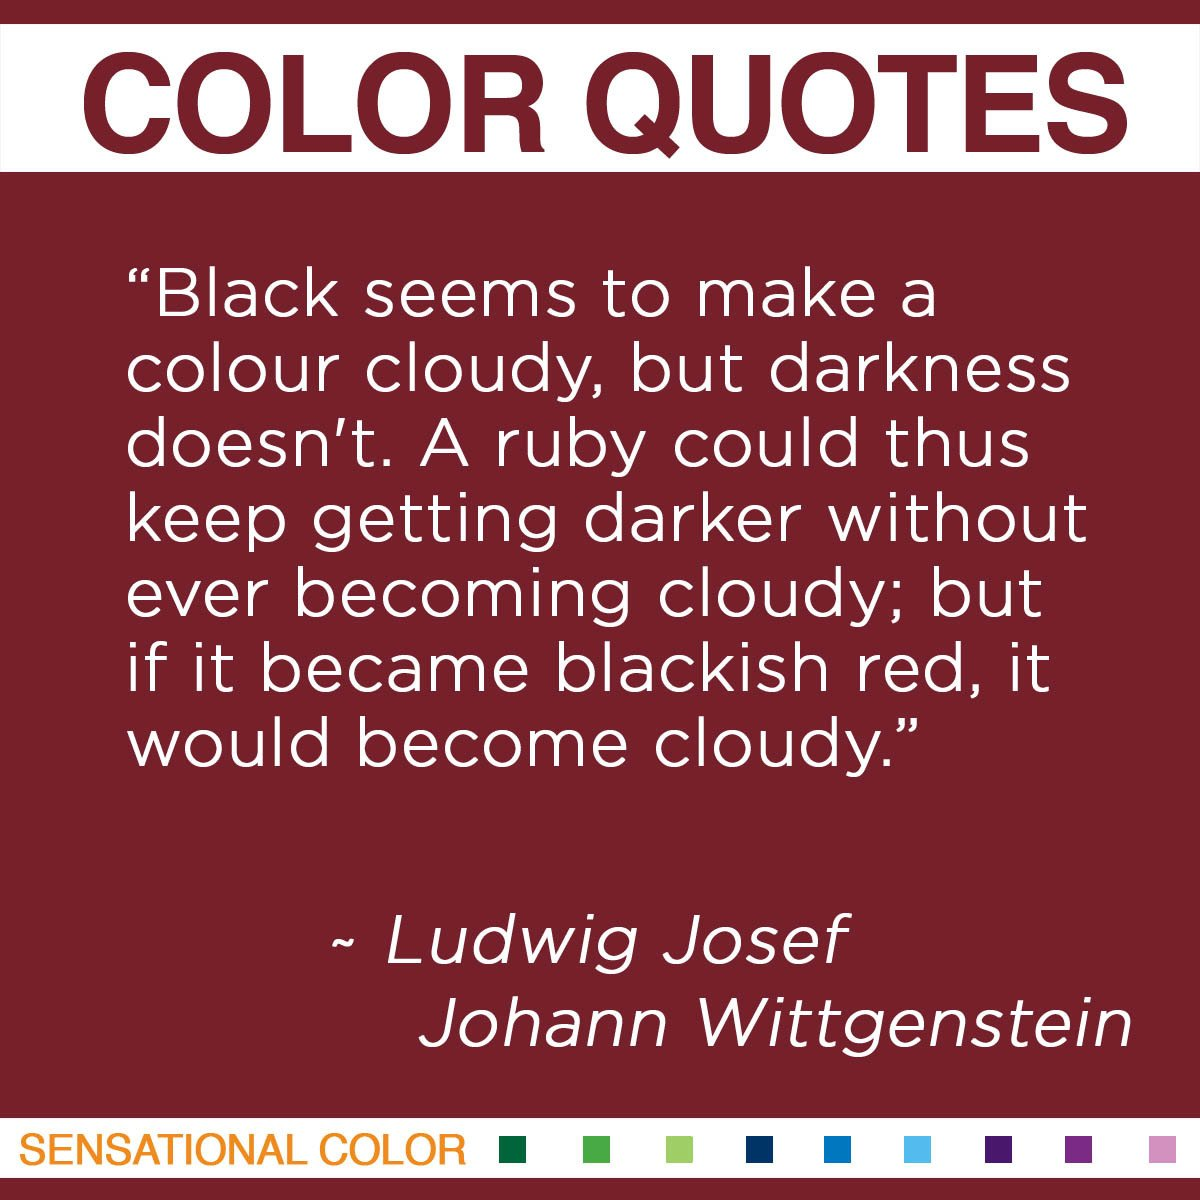 """Black seems to make a colour cloudy, but darkness doesn't. A ruby could thus keep getting darker without ever becoming cloudy; but if it became blackish red, it would become cloudy."" - Ludwig Josef Johann Wittgenstein"